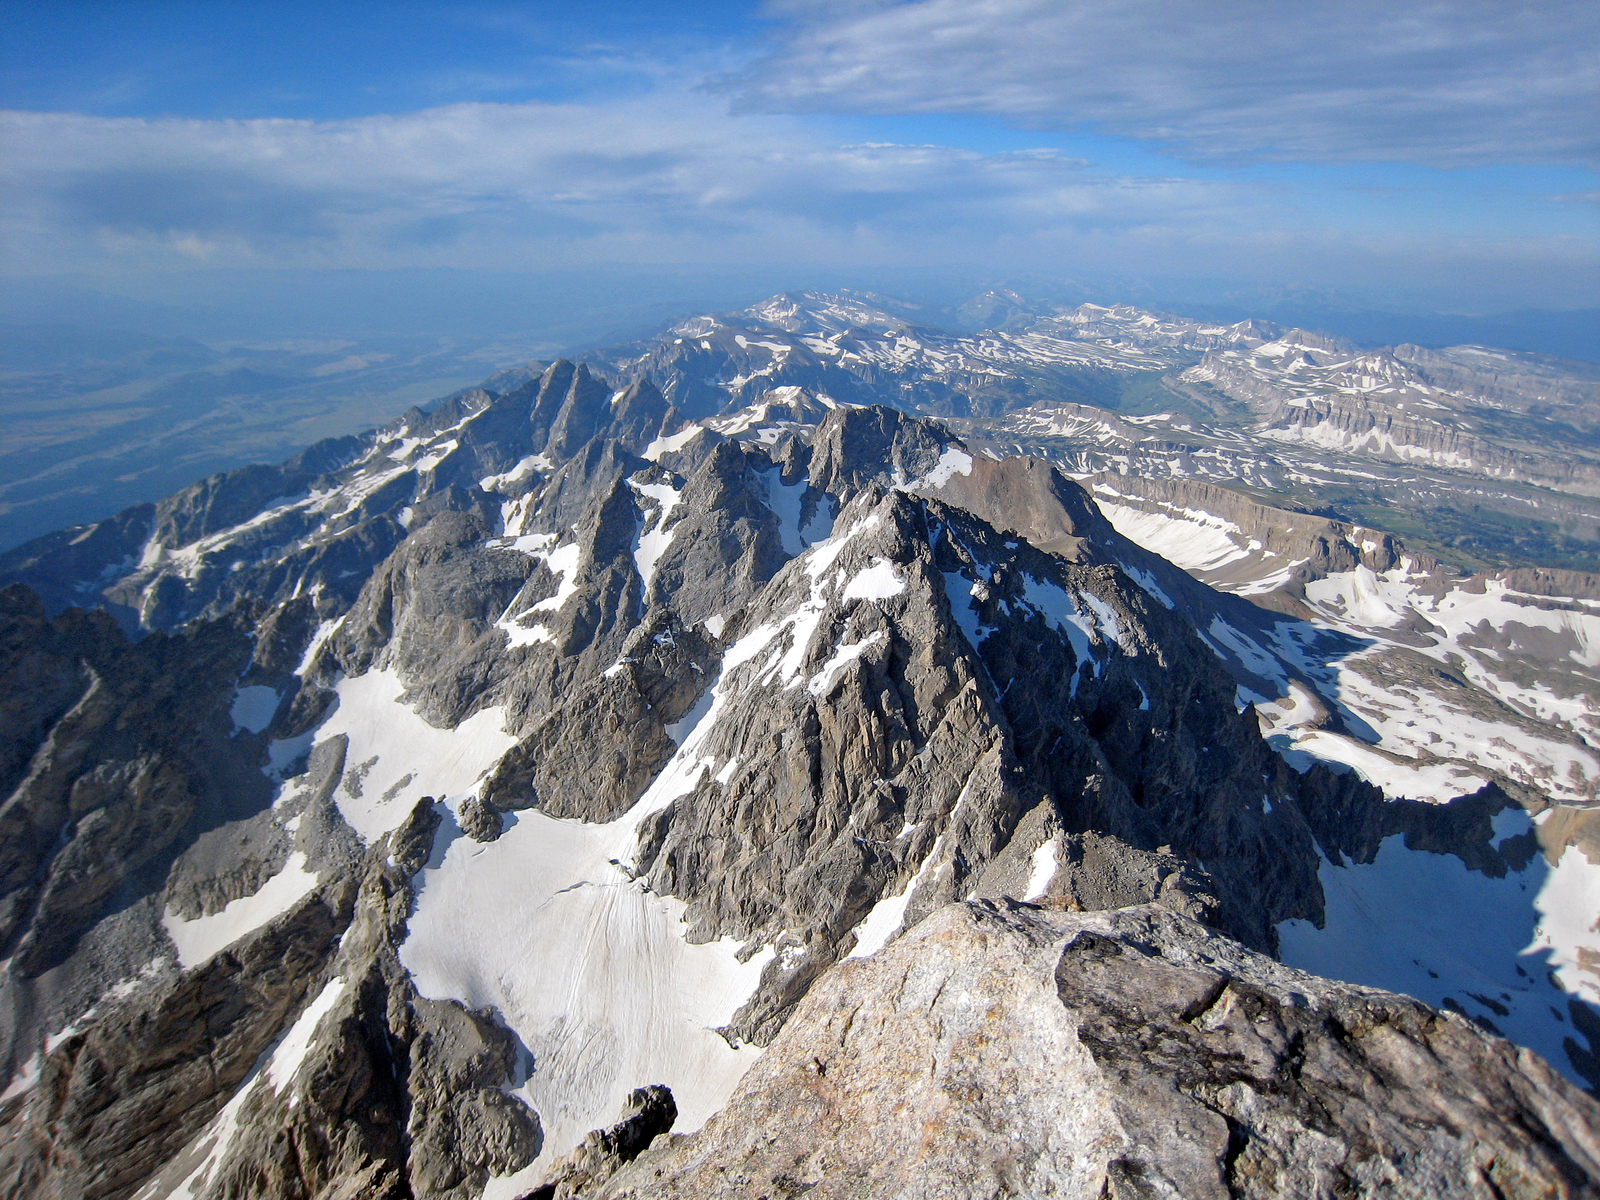 looking south down the Teton crest, Grand Teton National Park, Wyoming